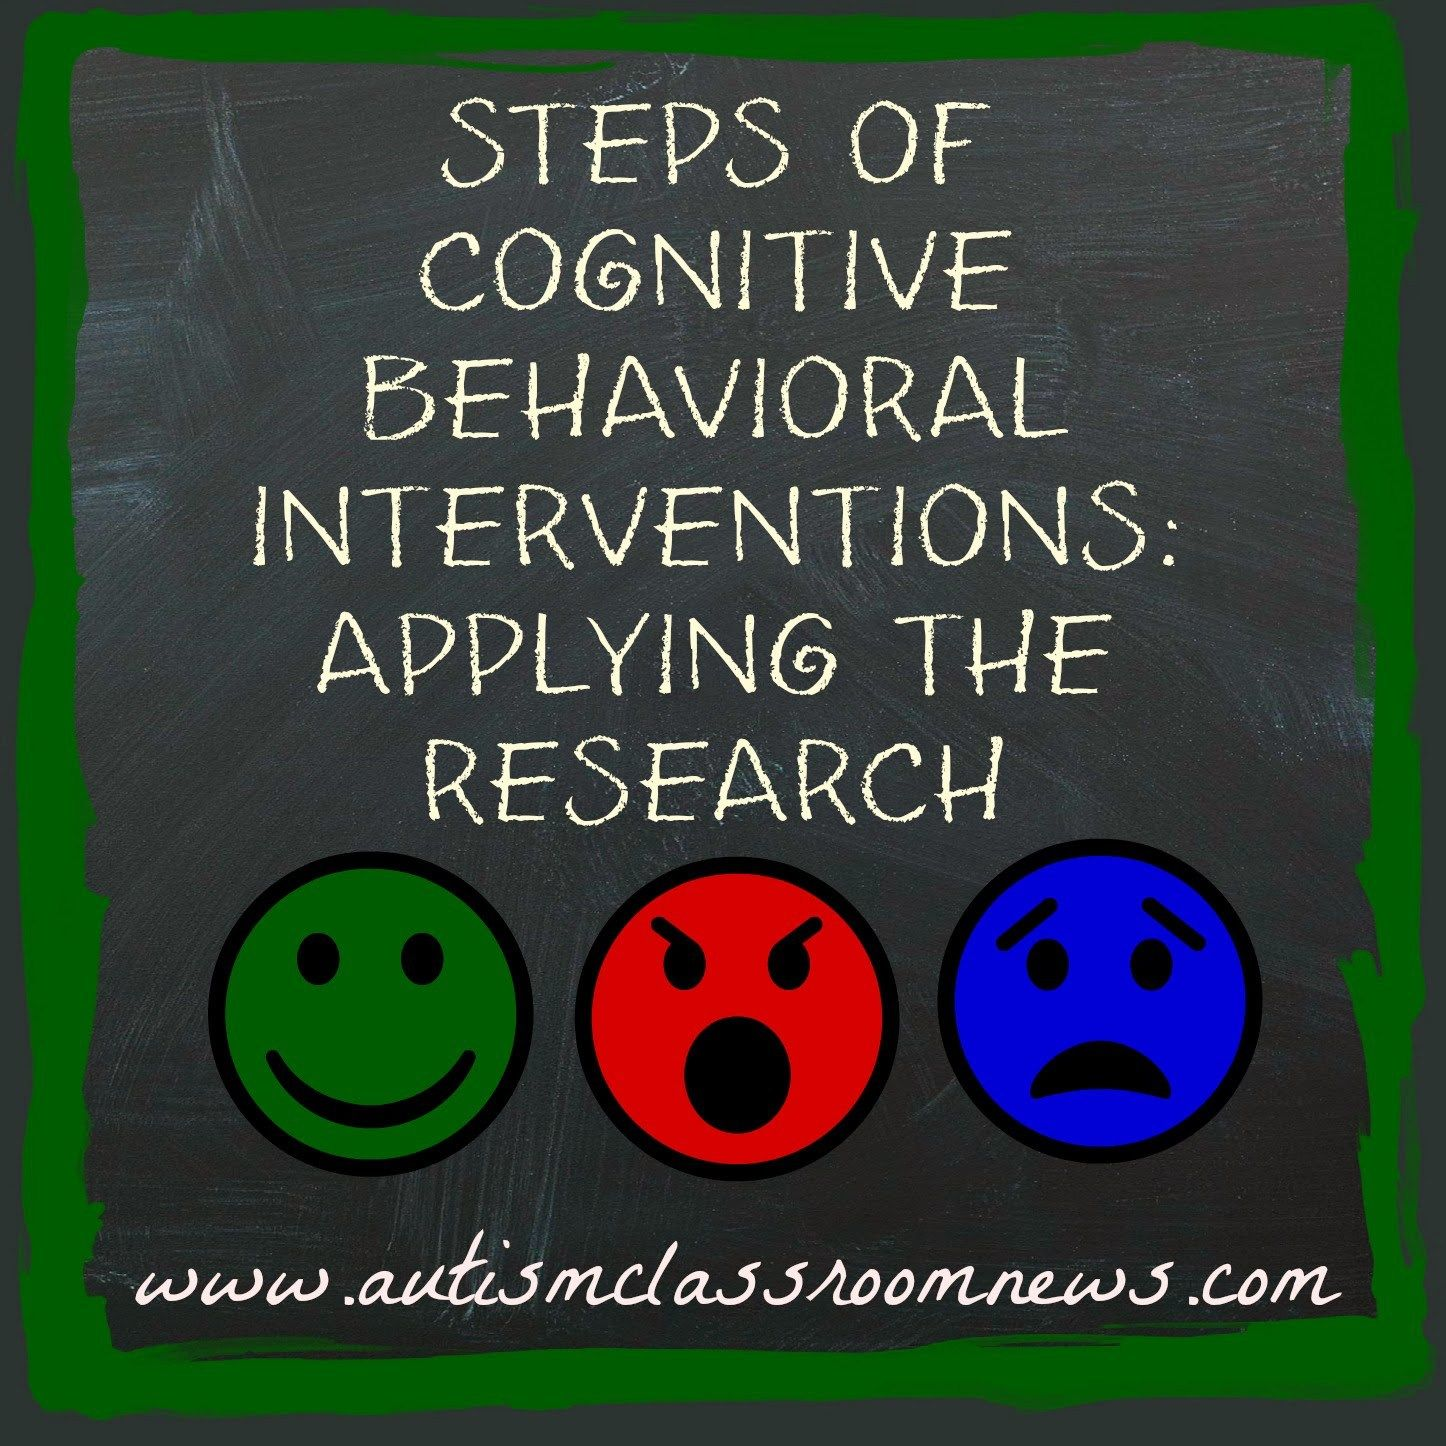 Components Of Cognitive Behavioral Interventions Applying The Research